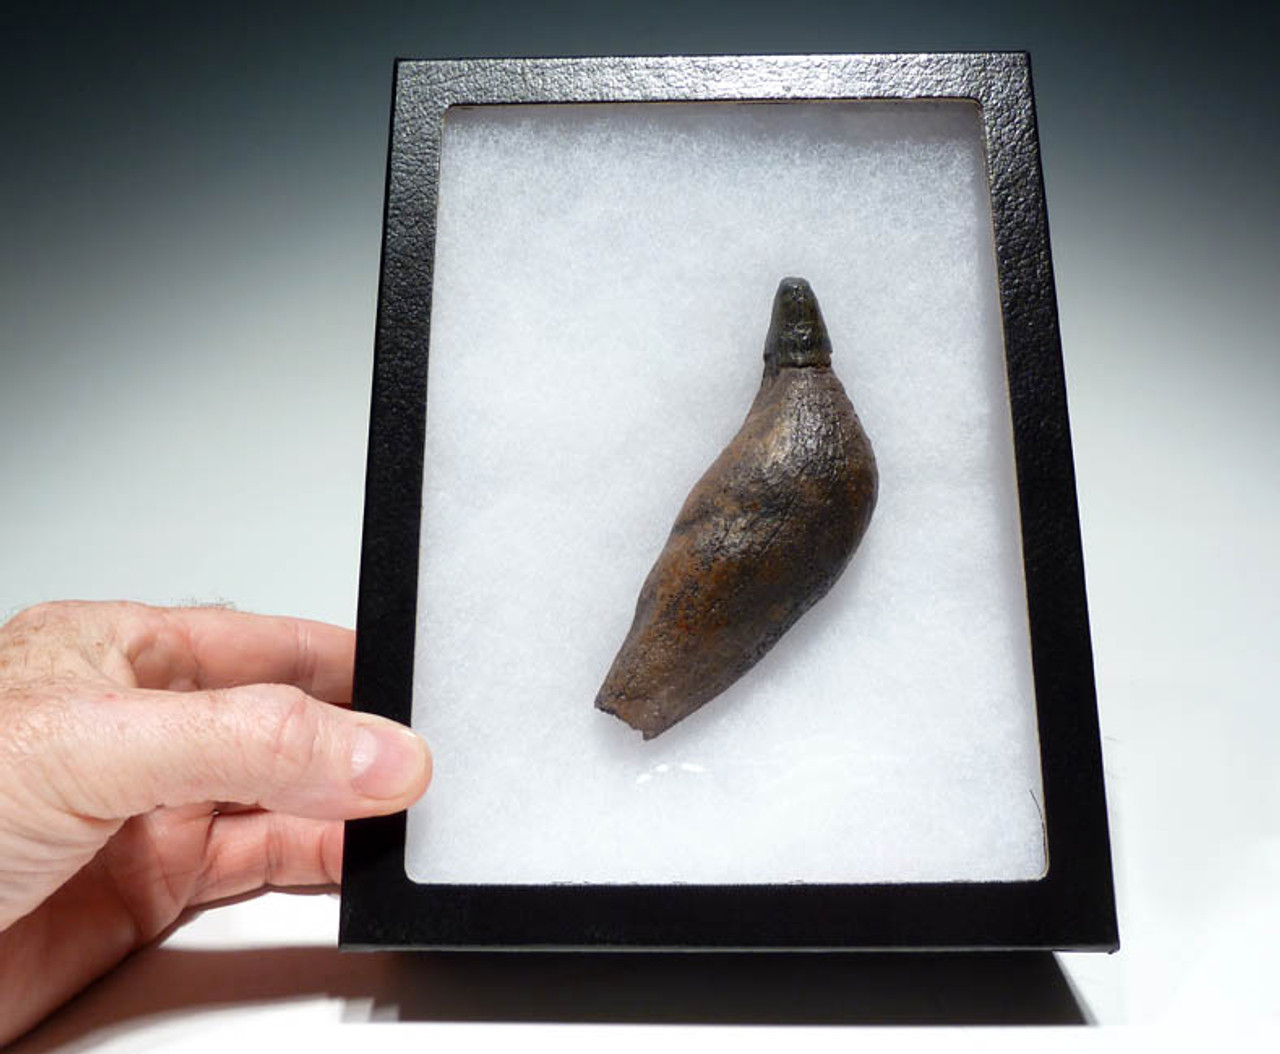 MV21-027 - CHOICE GRADE COMPLETE 5.5 INCH PREHISTORIC SPERM WHALE TOOTH WITH FULL ROOT AND CROWN